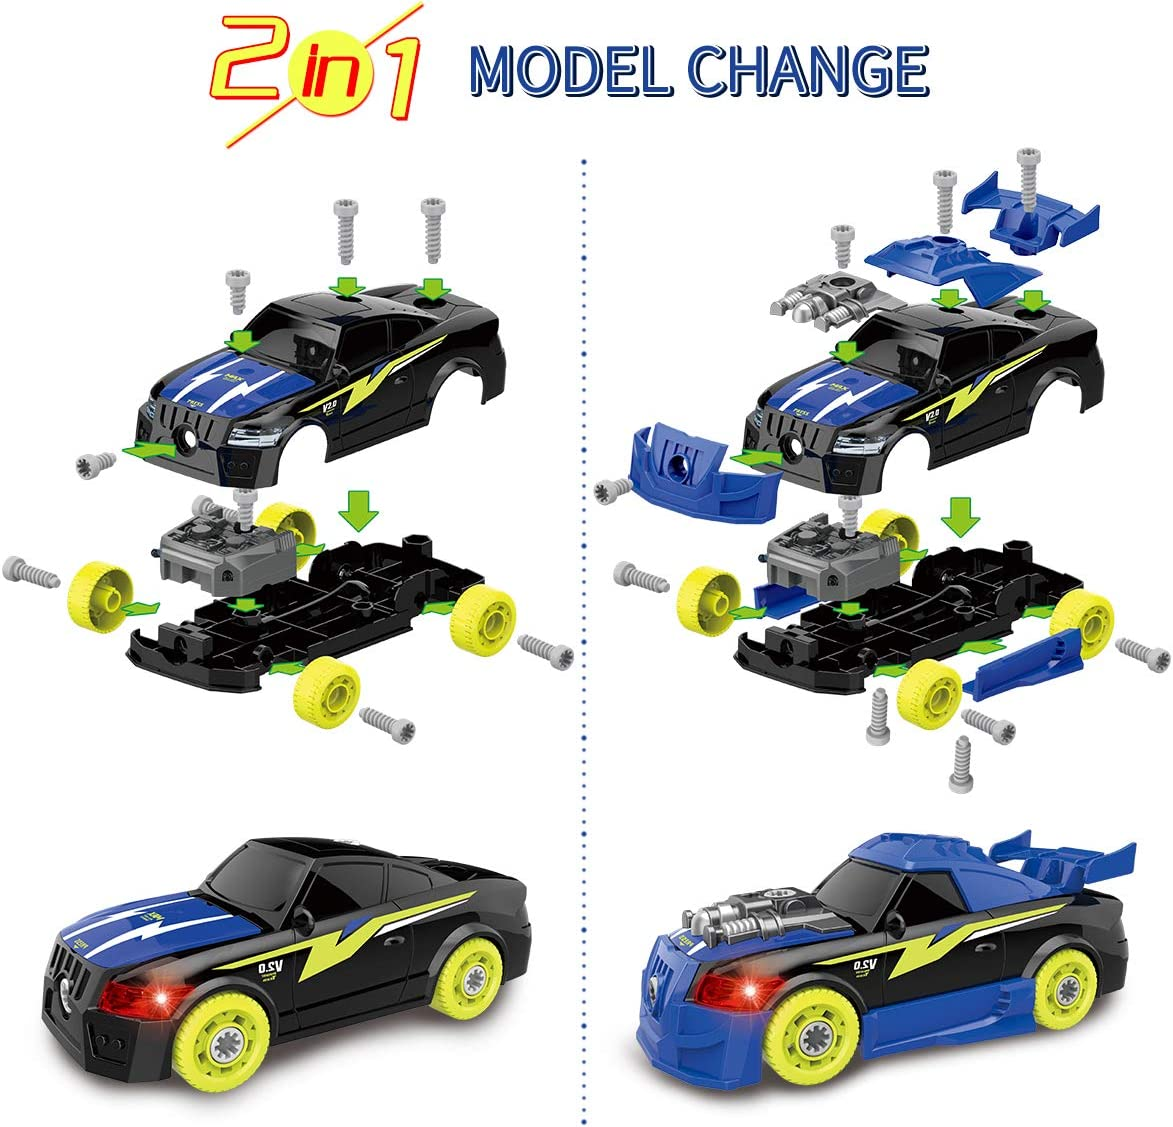 STEM Learning Toys with Lights and Sounds for Age 2 3 4 5 6 Year Old Girls Boys DIY Assembly Car Toys with Electric Drill Tool 26 Pic Building Play Set Sciencow Take Apart Racing Car